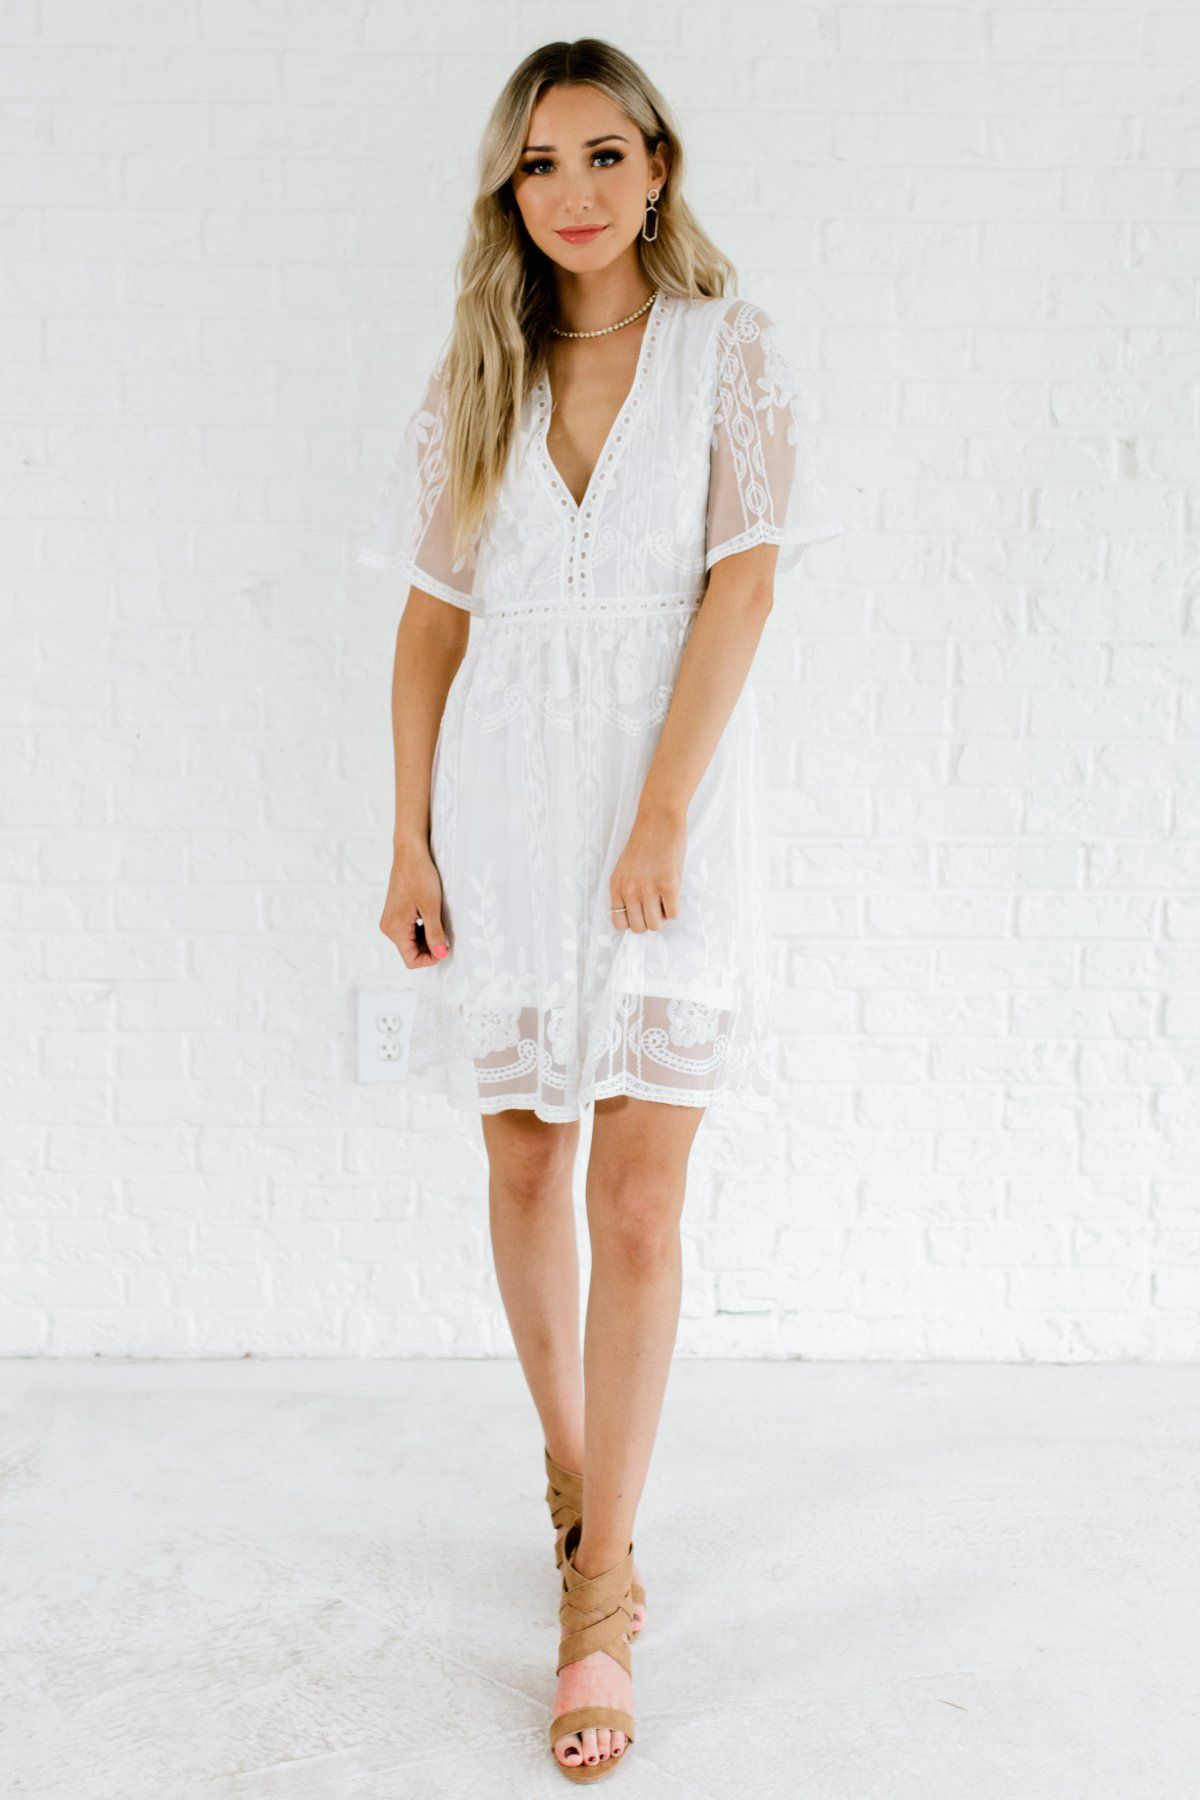 63bc3df6a588 White Crochet Floral Lace Overlay Mini Dresses with Flowy Sleeves and See  Through Back